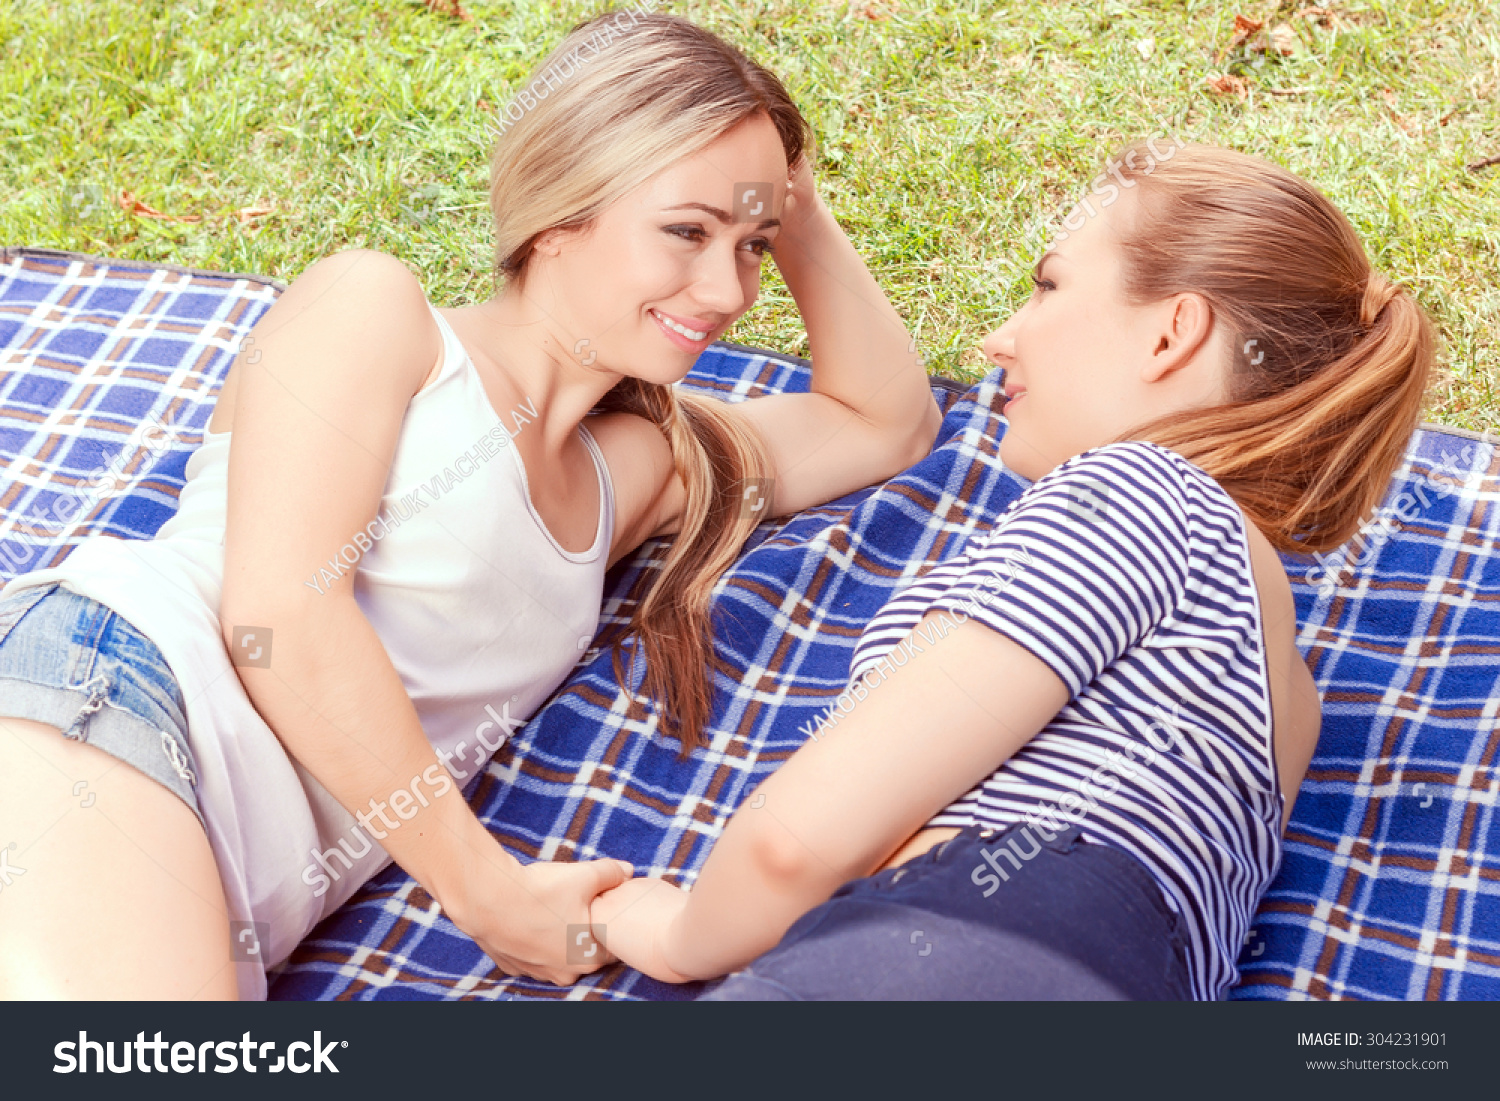 Two pretty young lesbian women lying on cover in park and looking at